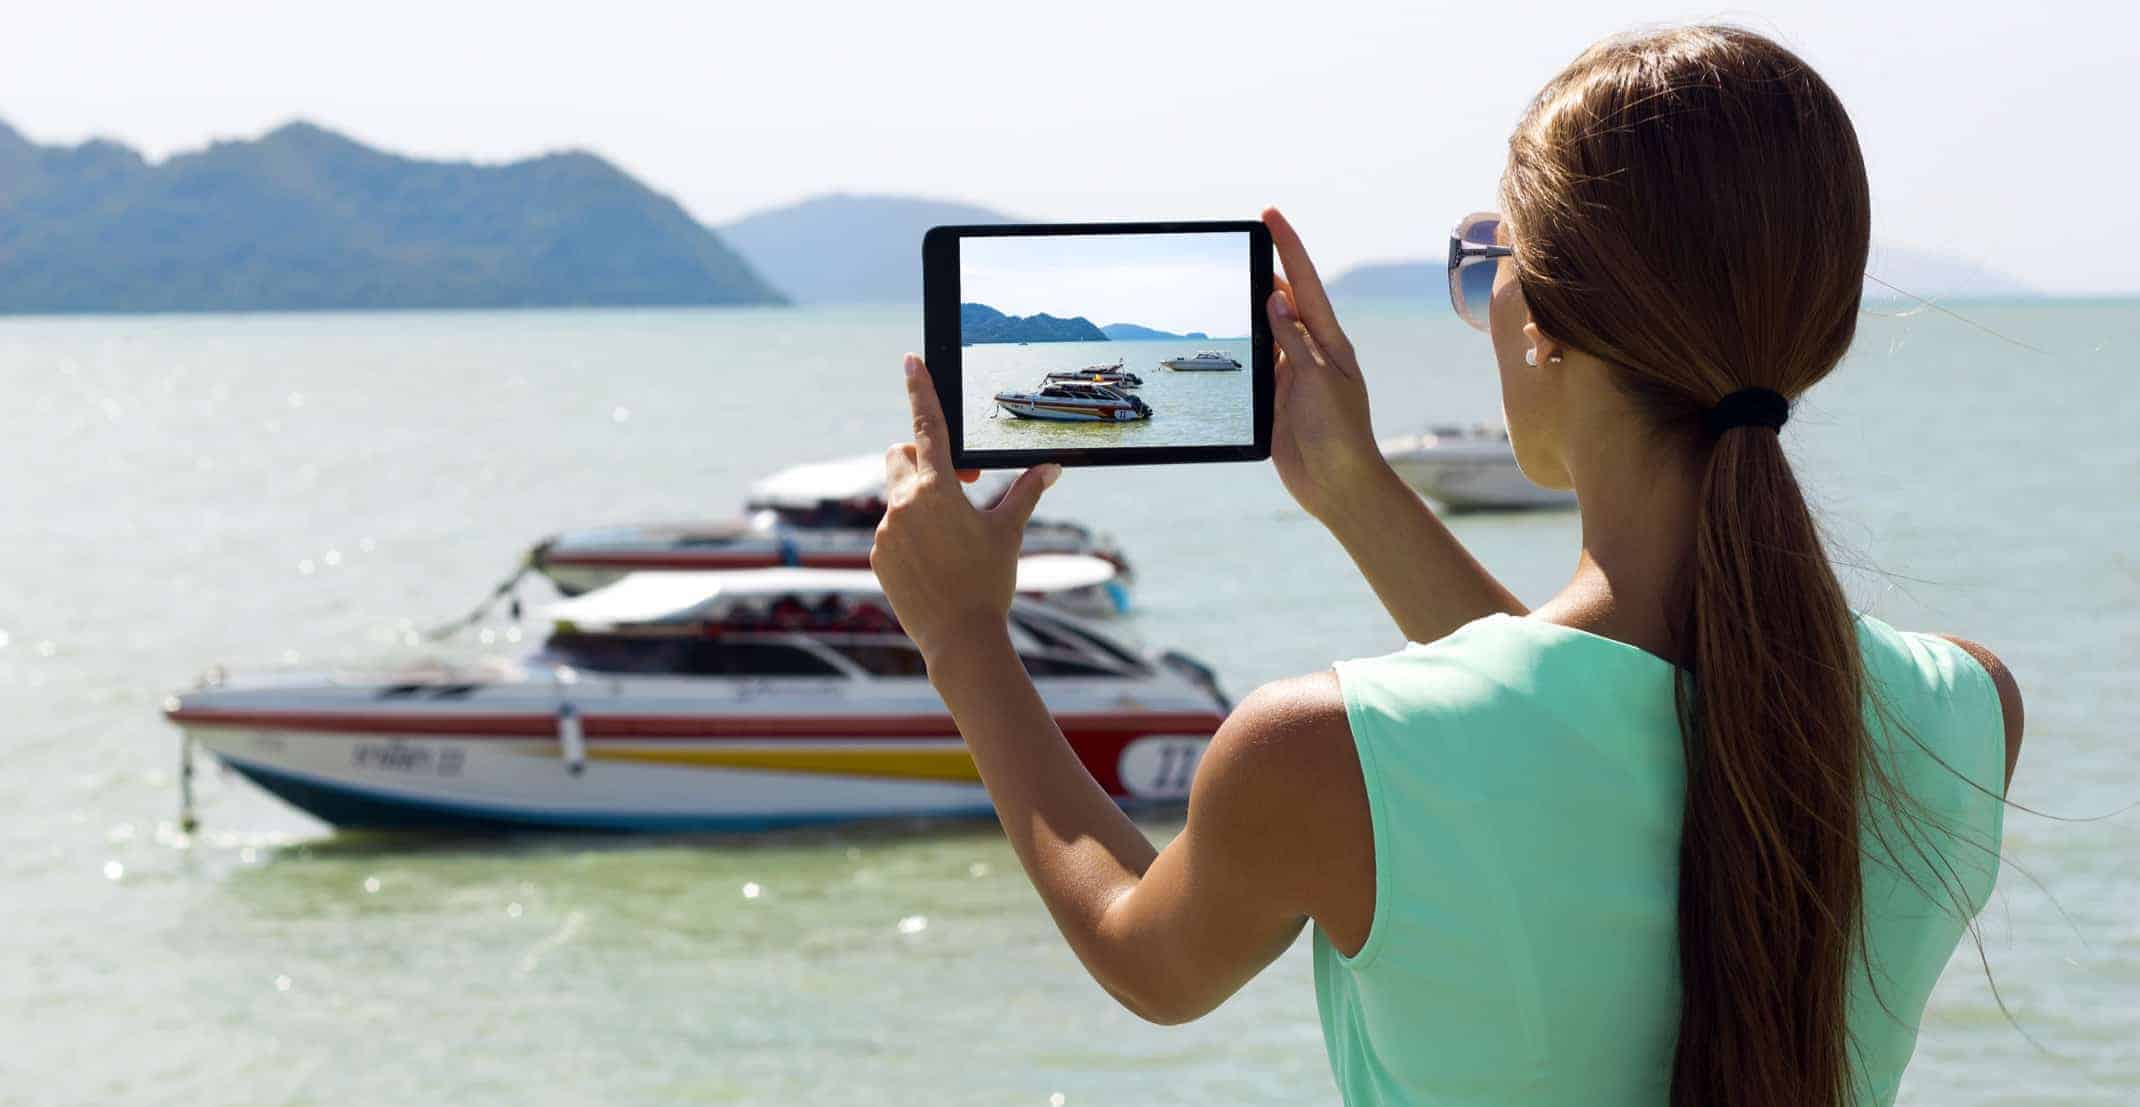 Woman Taking Pictures with a Tablet